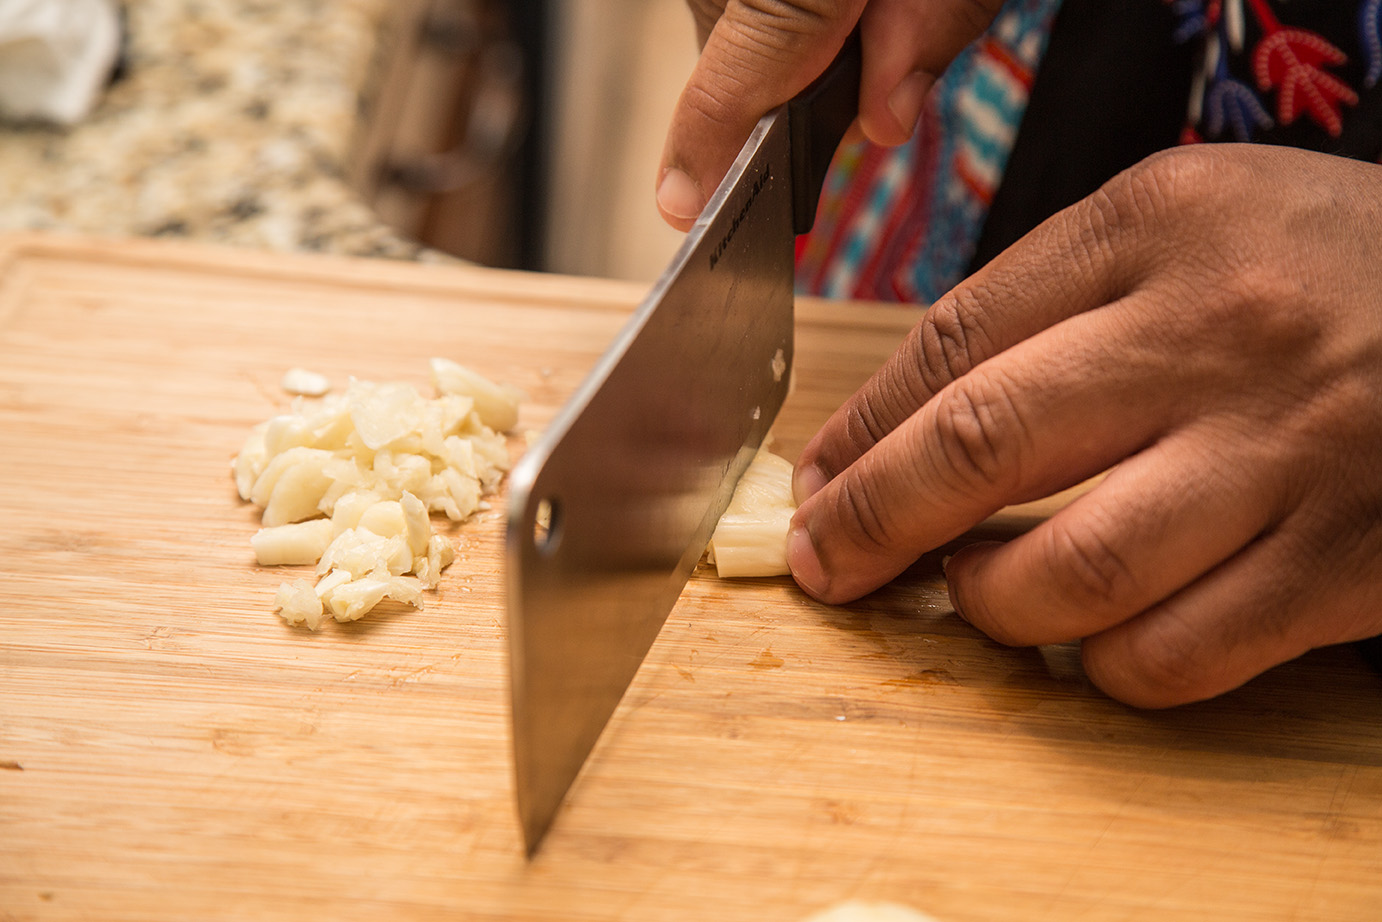 Chopping the garlic.